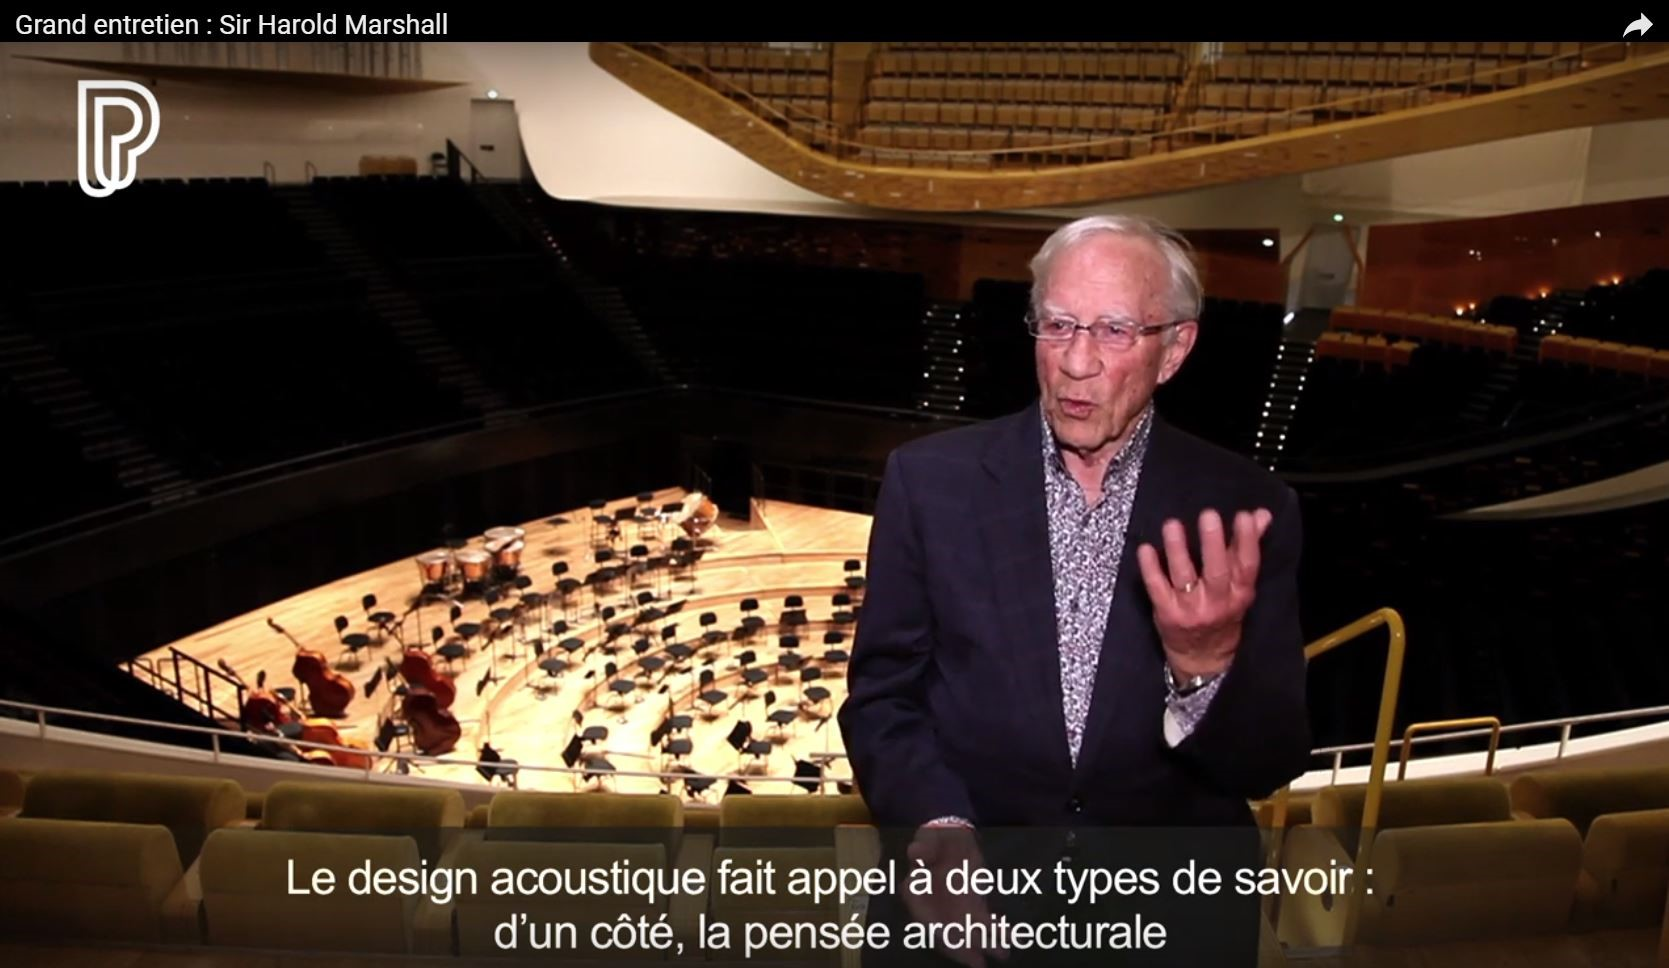 Interview with Sir Harold Marshall, Principal Acoustician of the Philharmonie de Paris, pioneer of lateral reflections and great innovator in concert hall design